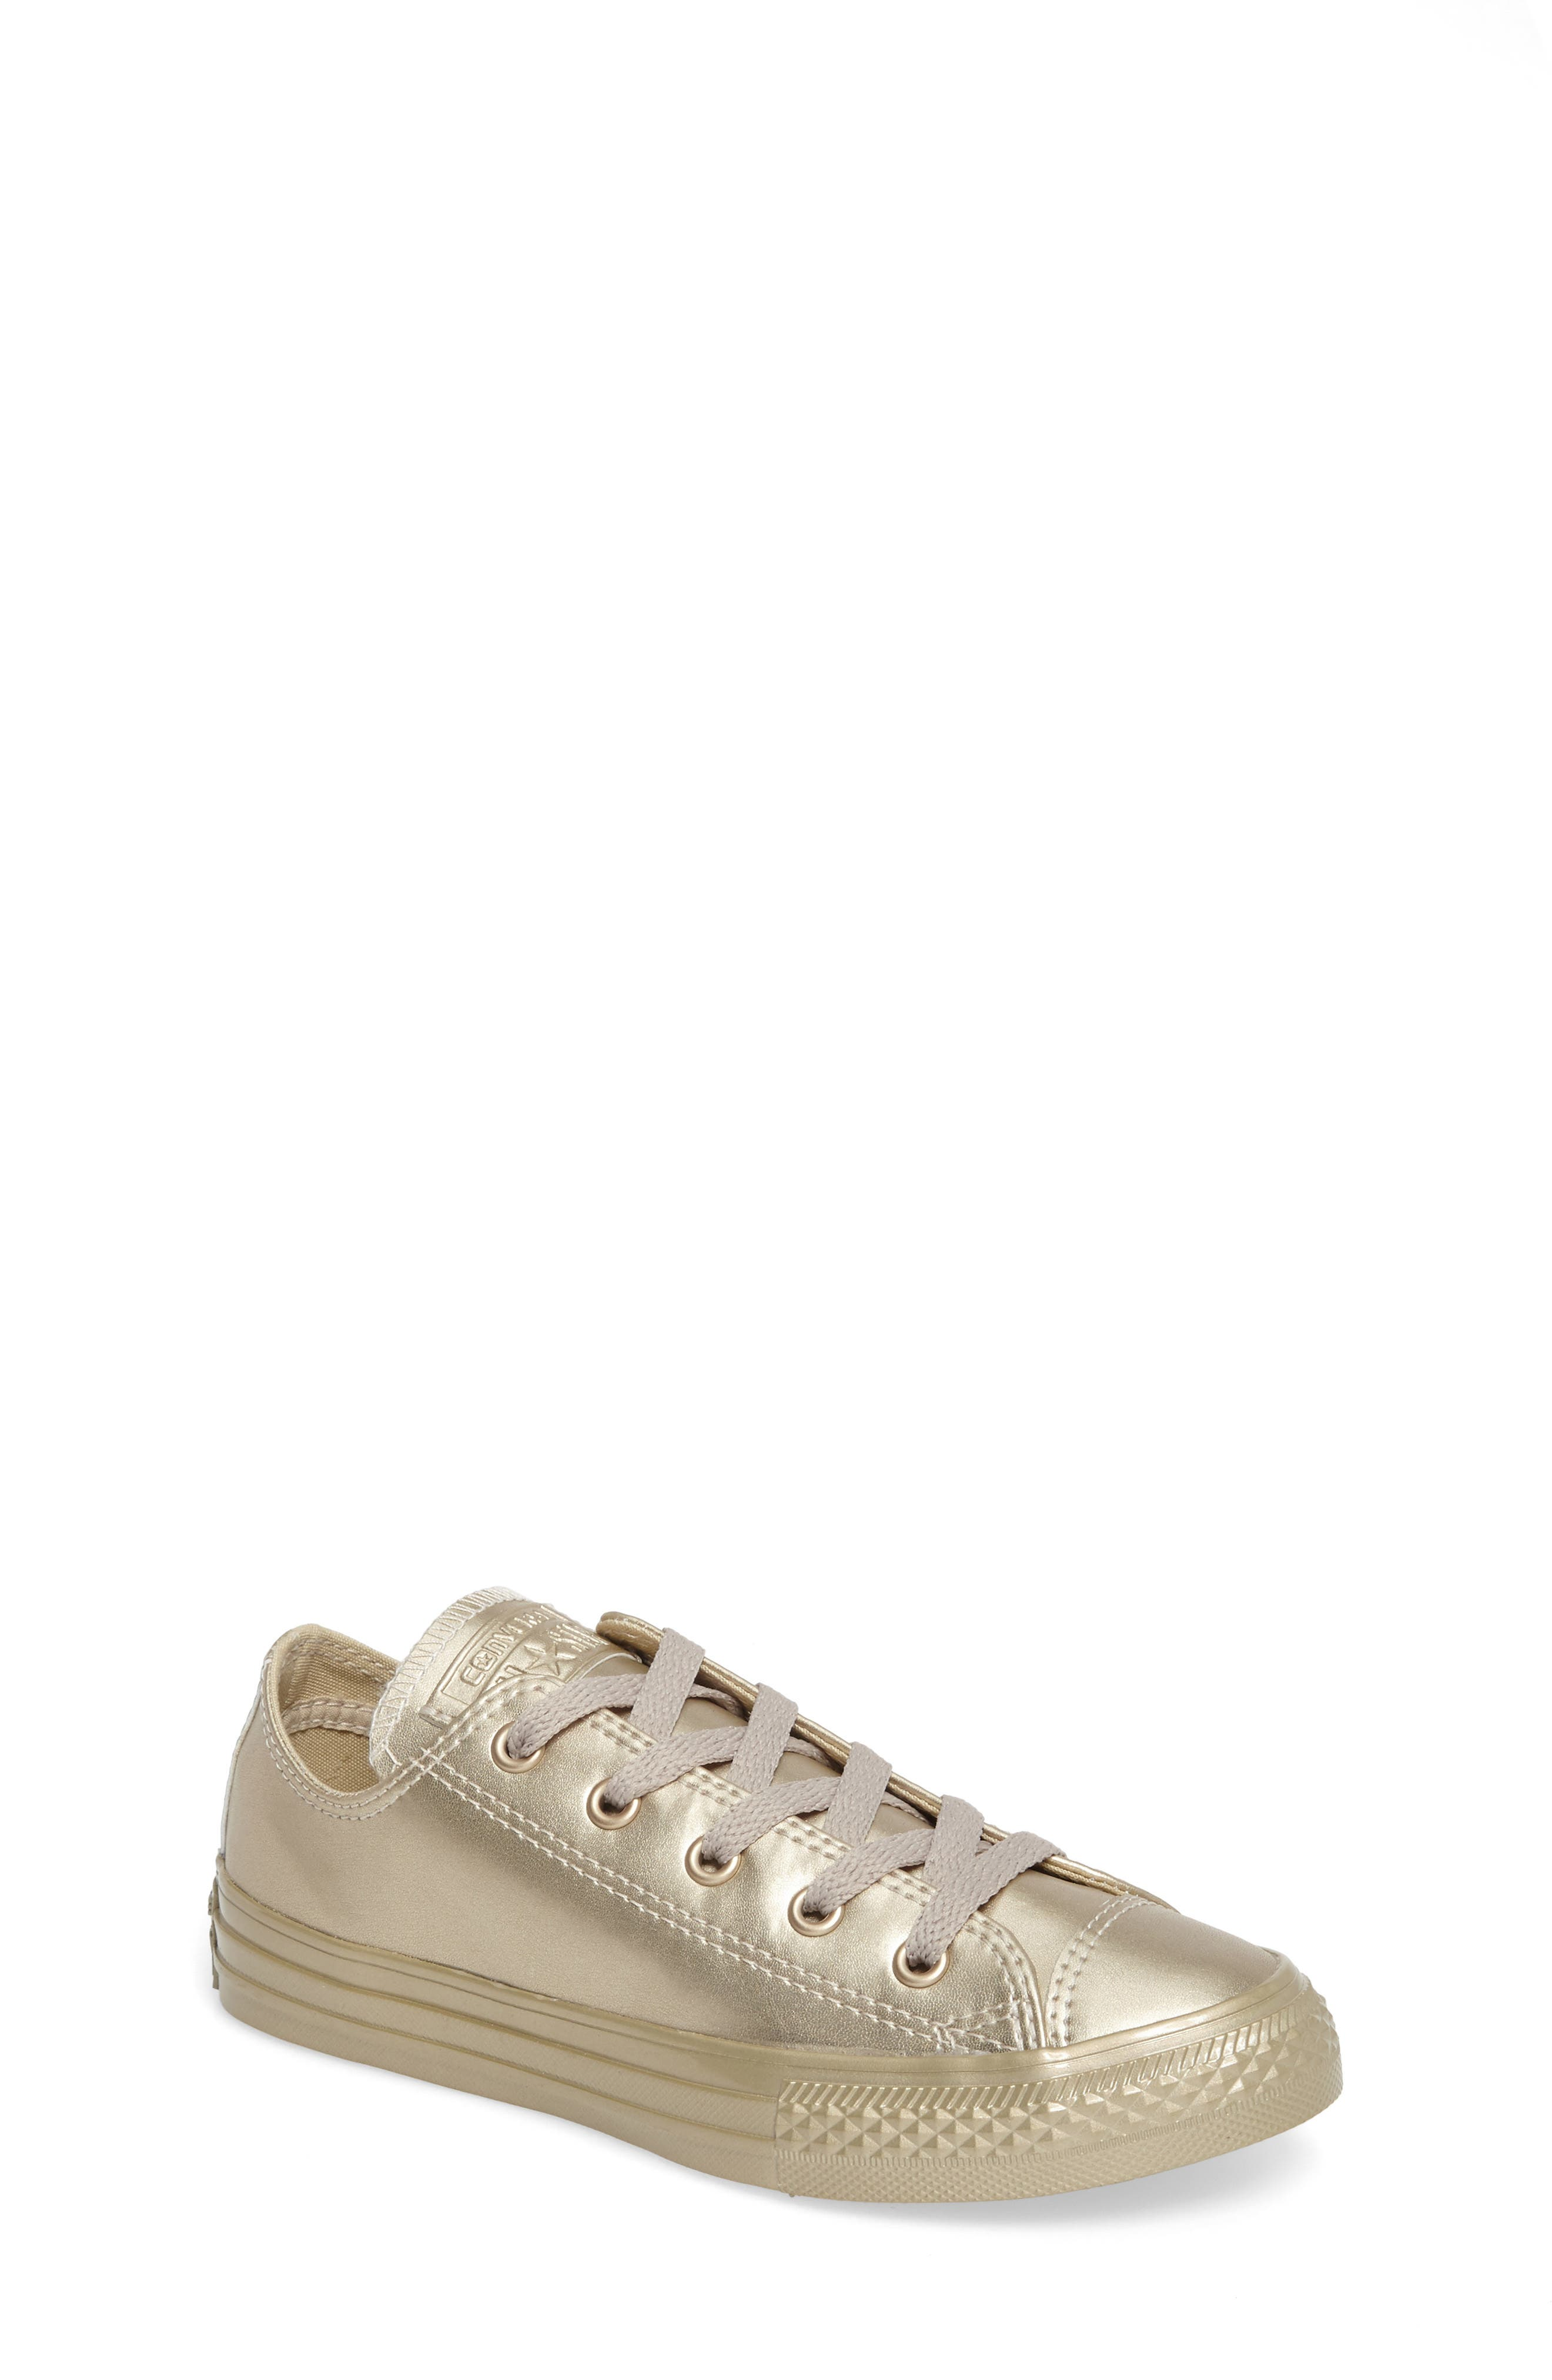 CONVERSE Chuck Taylor<sup>®</sup> All Star<sup>®</sup> Mono Metallic Low Top Sneaker